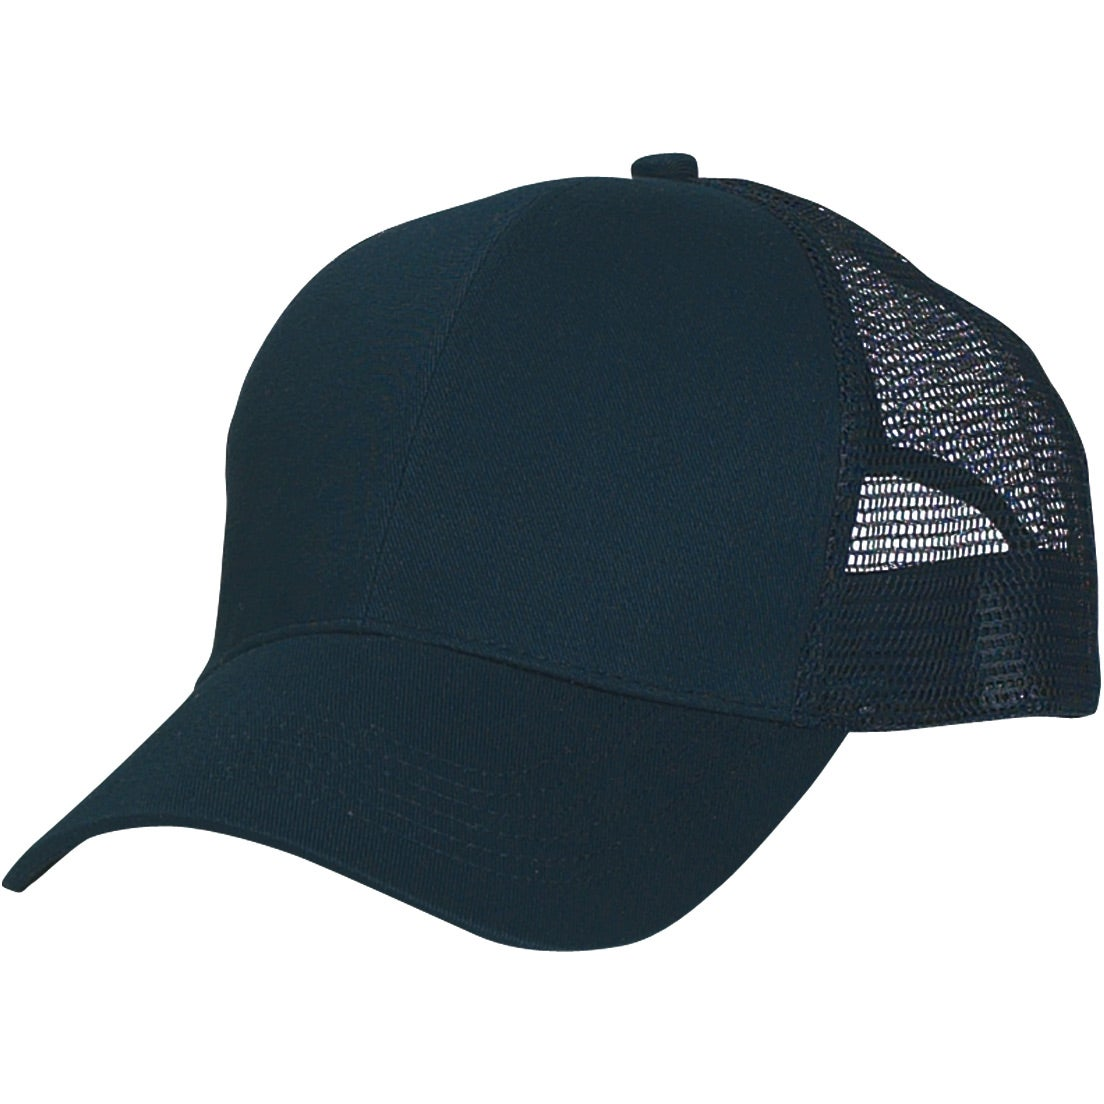 Product Features Joe's USA(tm) Mesh Back Flex-Fit Trucker Style Cap Printed with Shop Best Sellers· Deals of the Day· Fast Shipping· Read Ratings & Reviews.